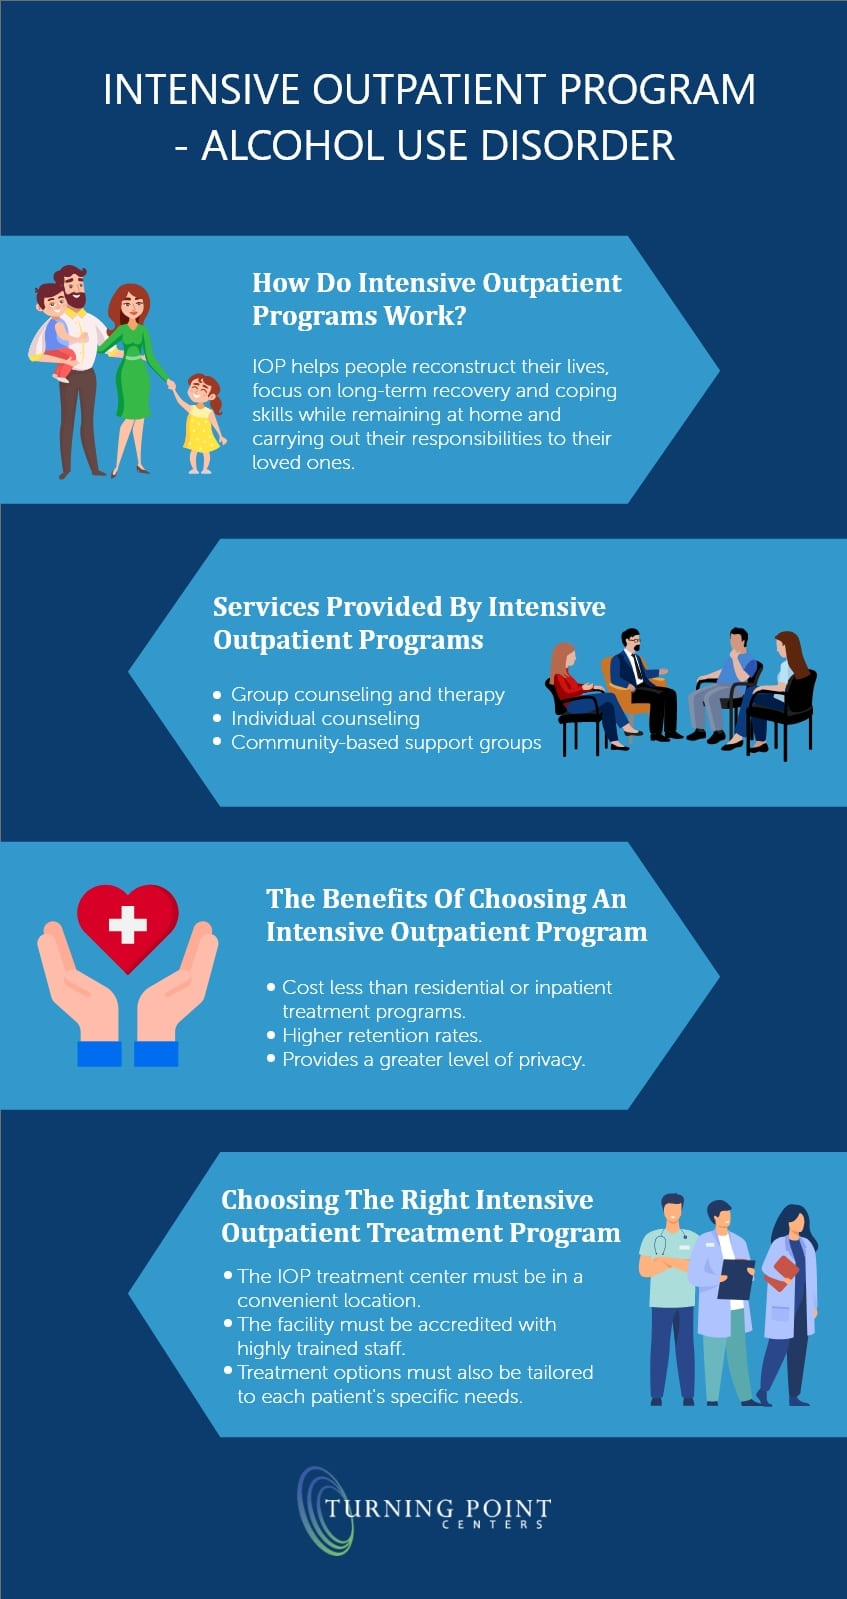 Intensive Outpatient Program - Alcohol Use Disorder